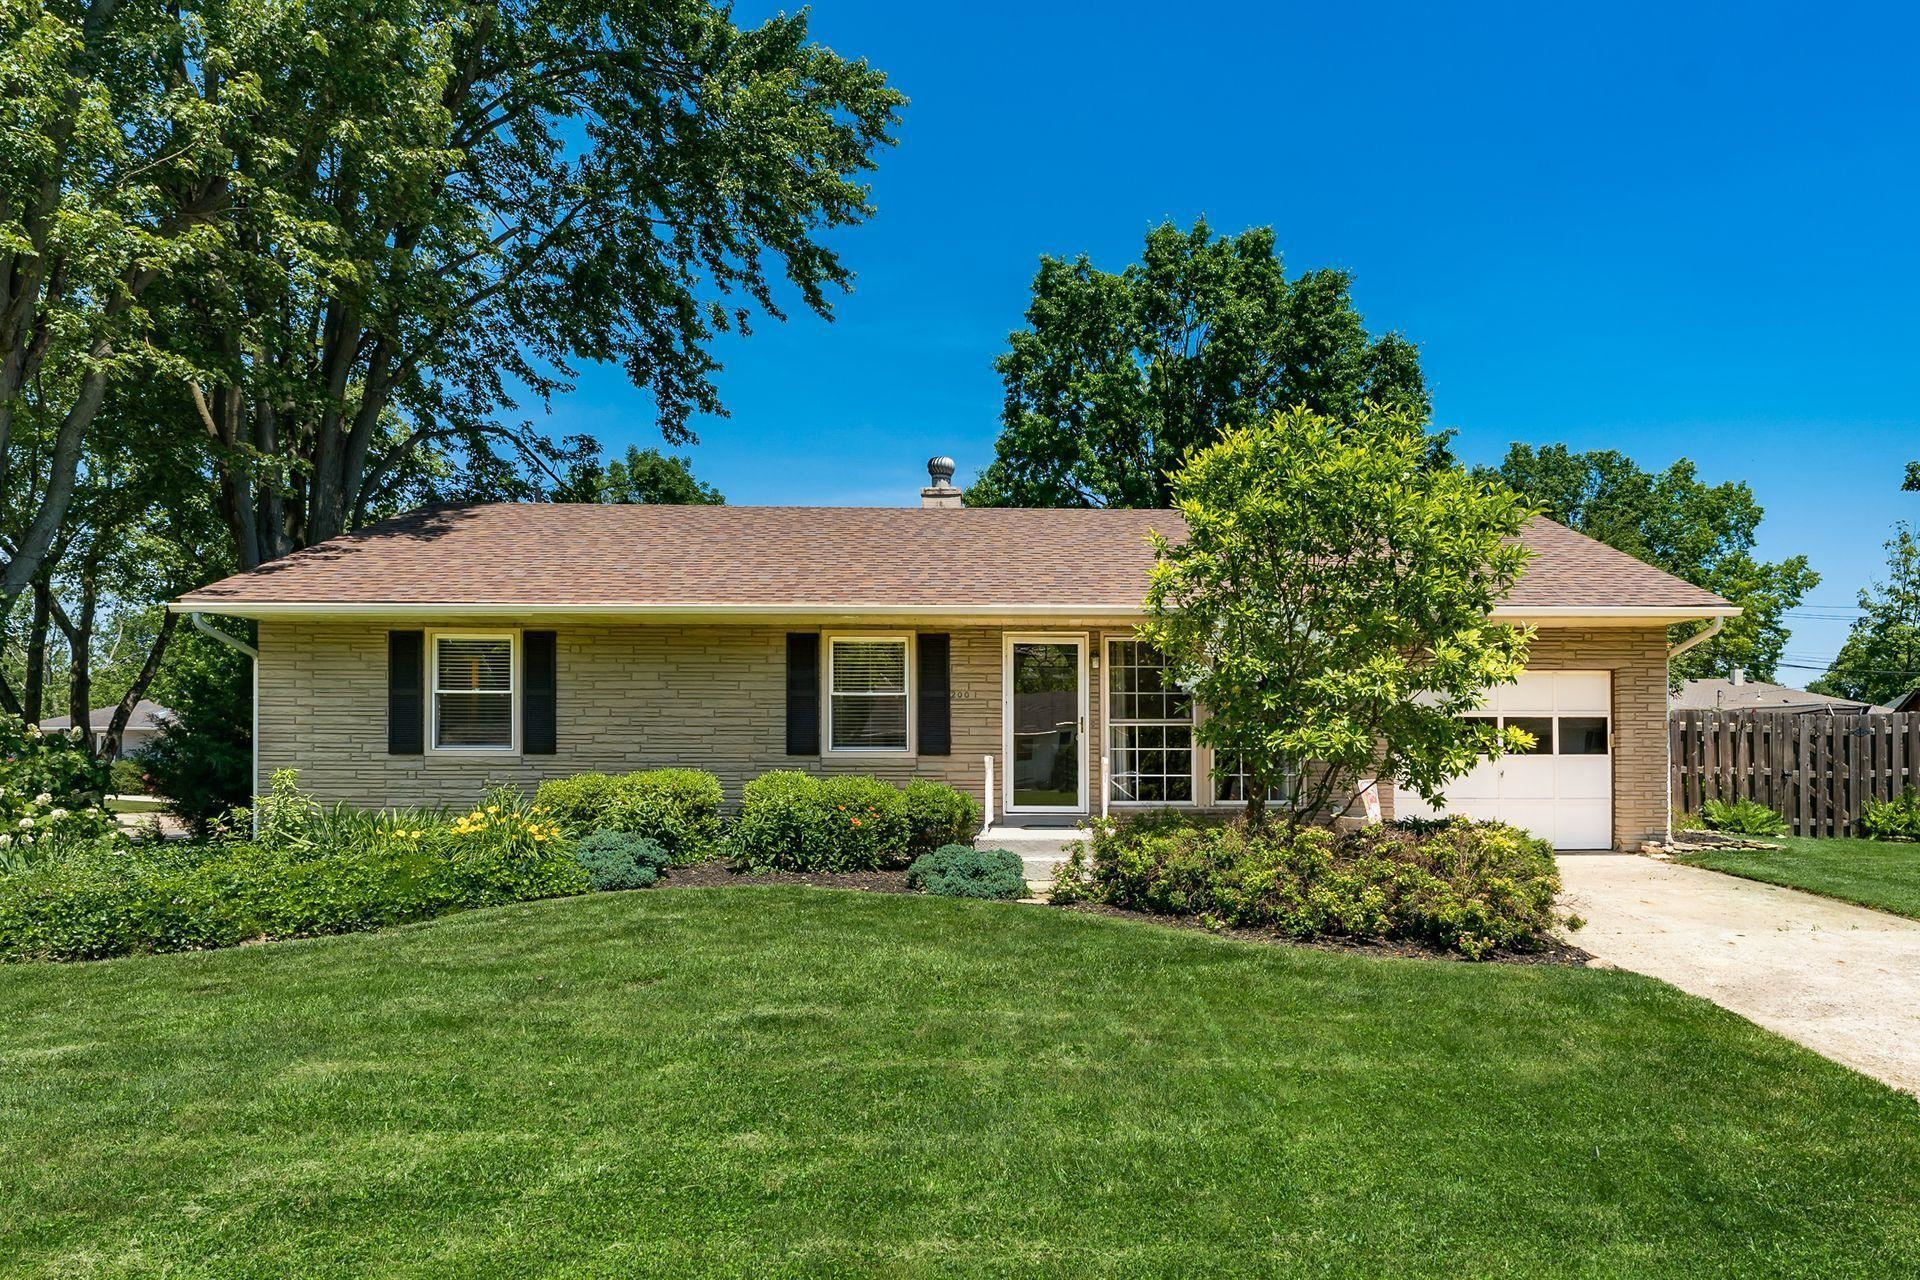 Photo of 200 Electric Avenue, Westerville, OH 43081 (MLS # 221021747)